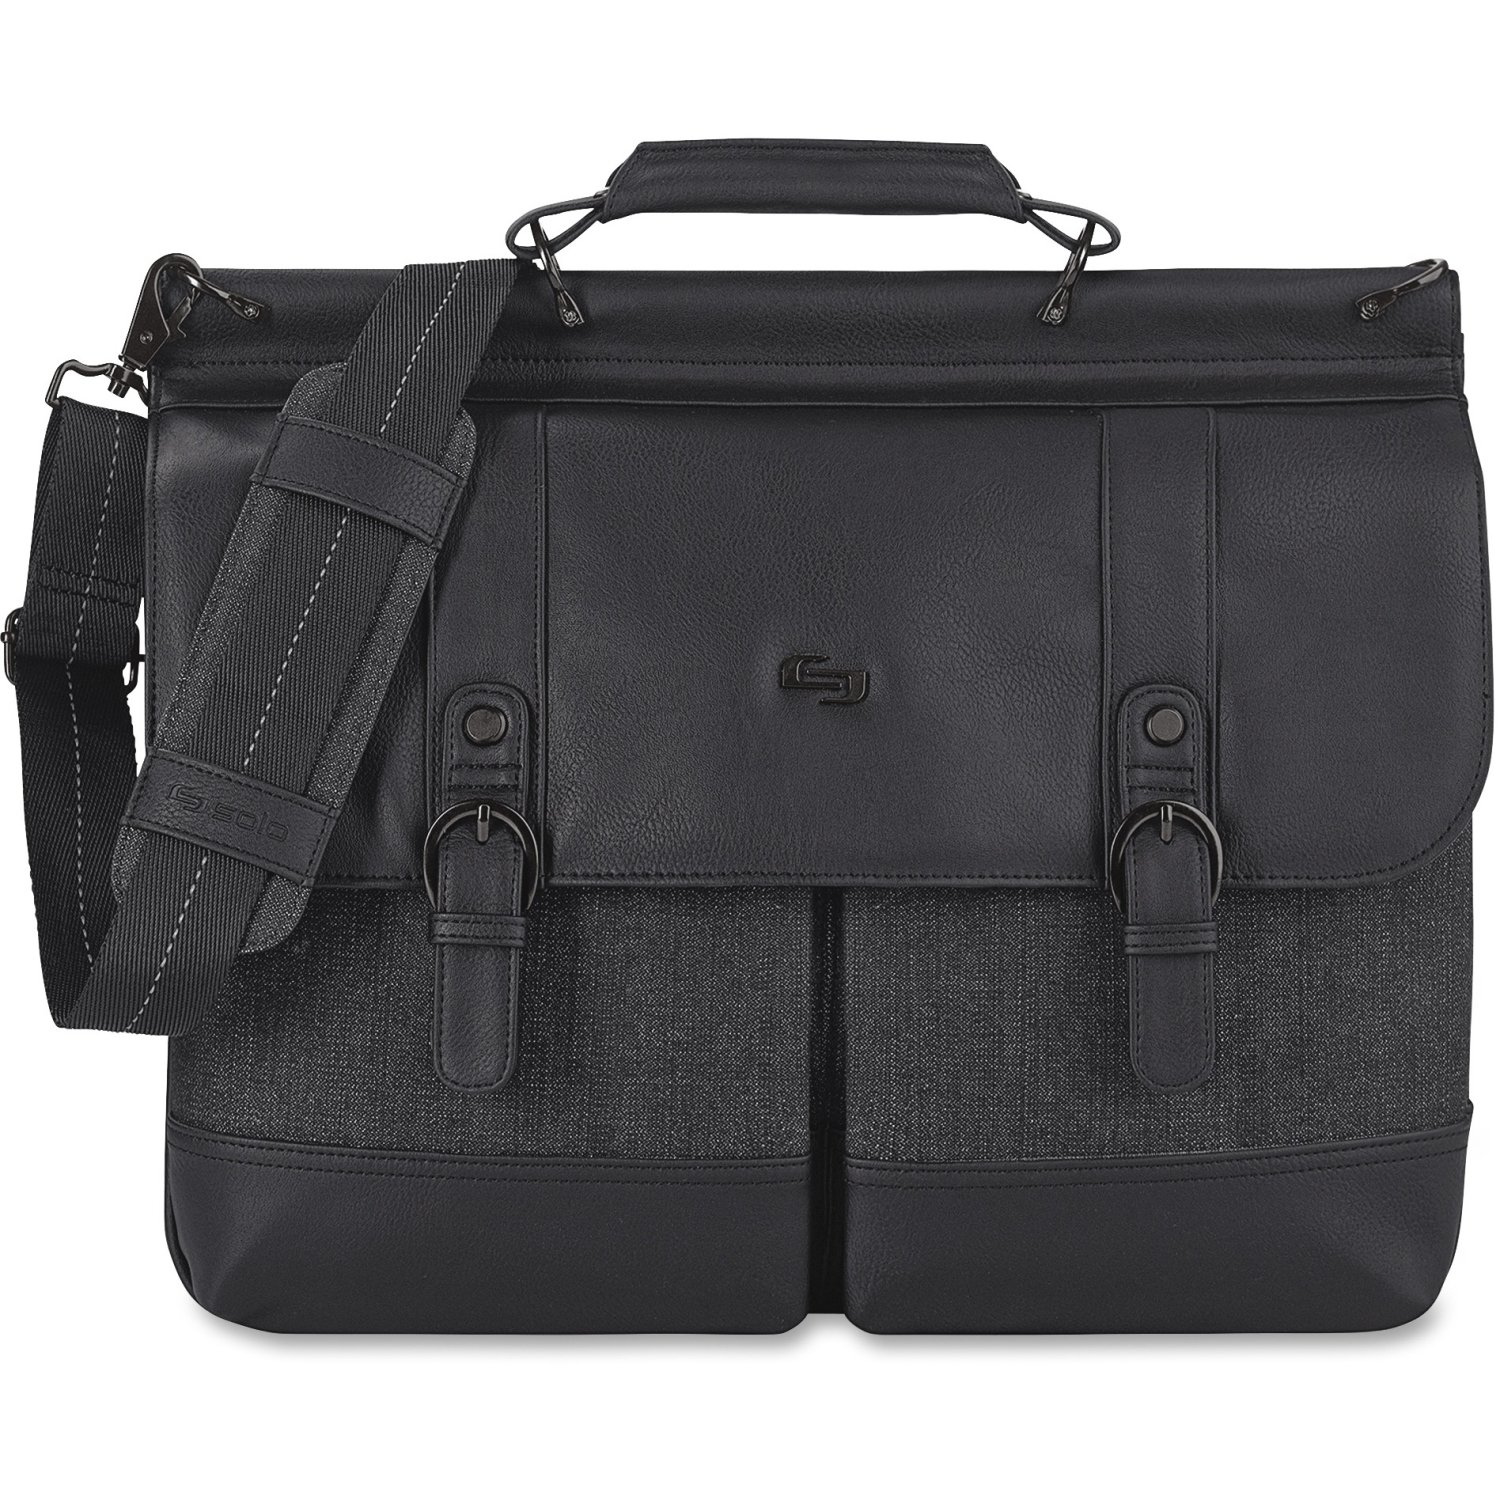 Solo Thompson 15.6 Inch Briefcase with Padded Laptop Compartment, Black/Grey